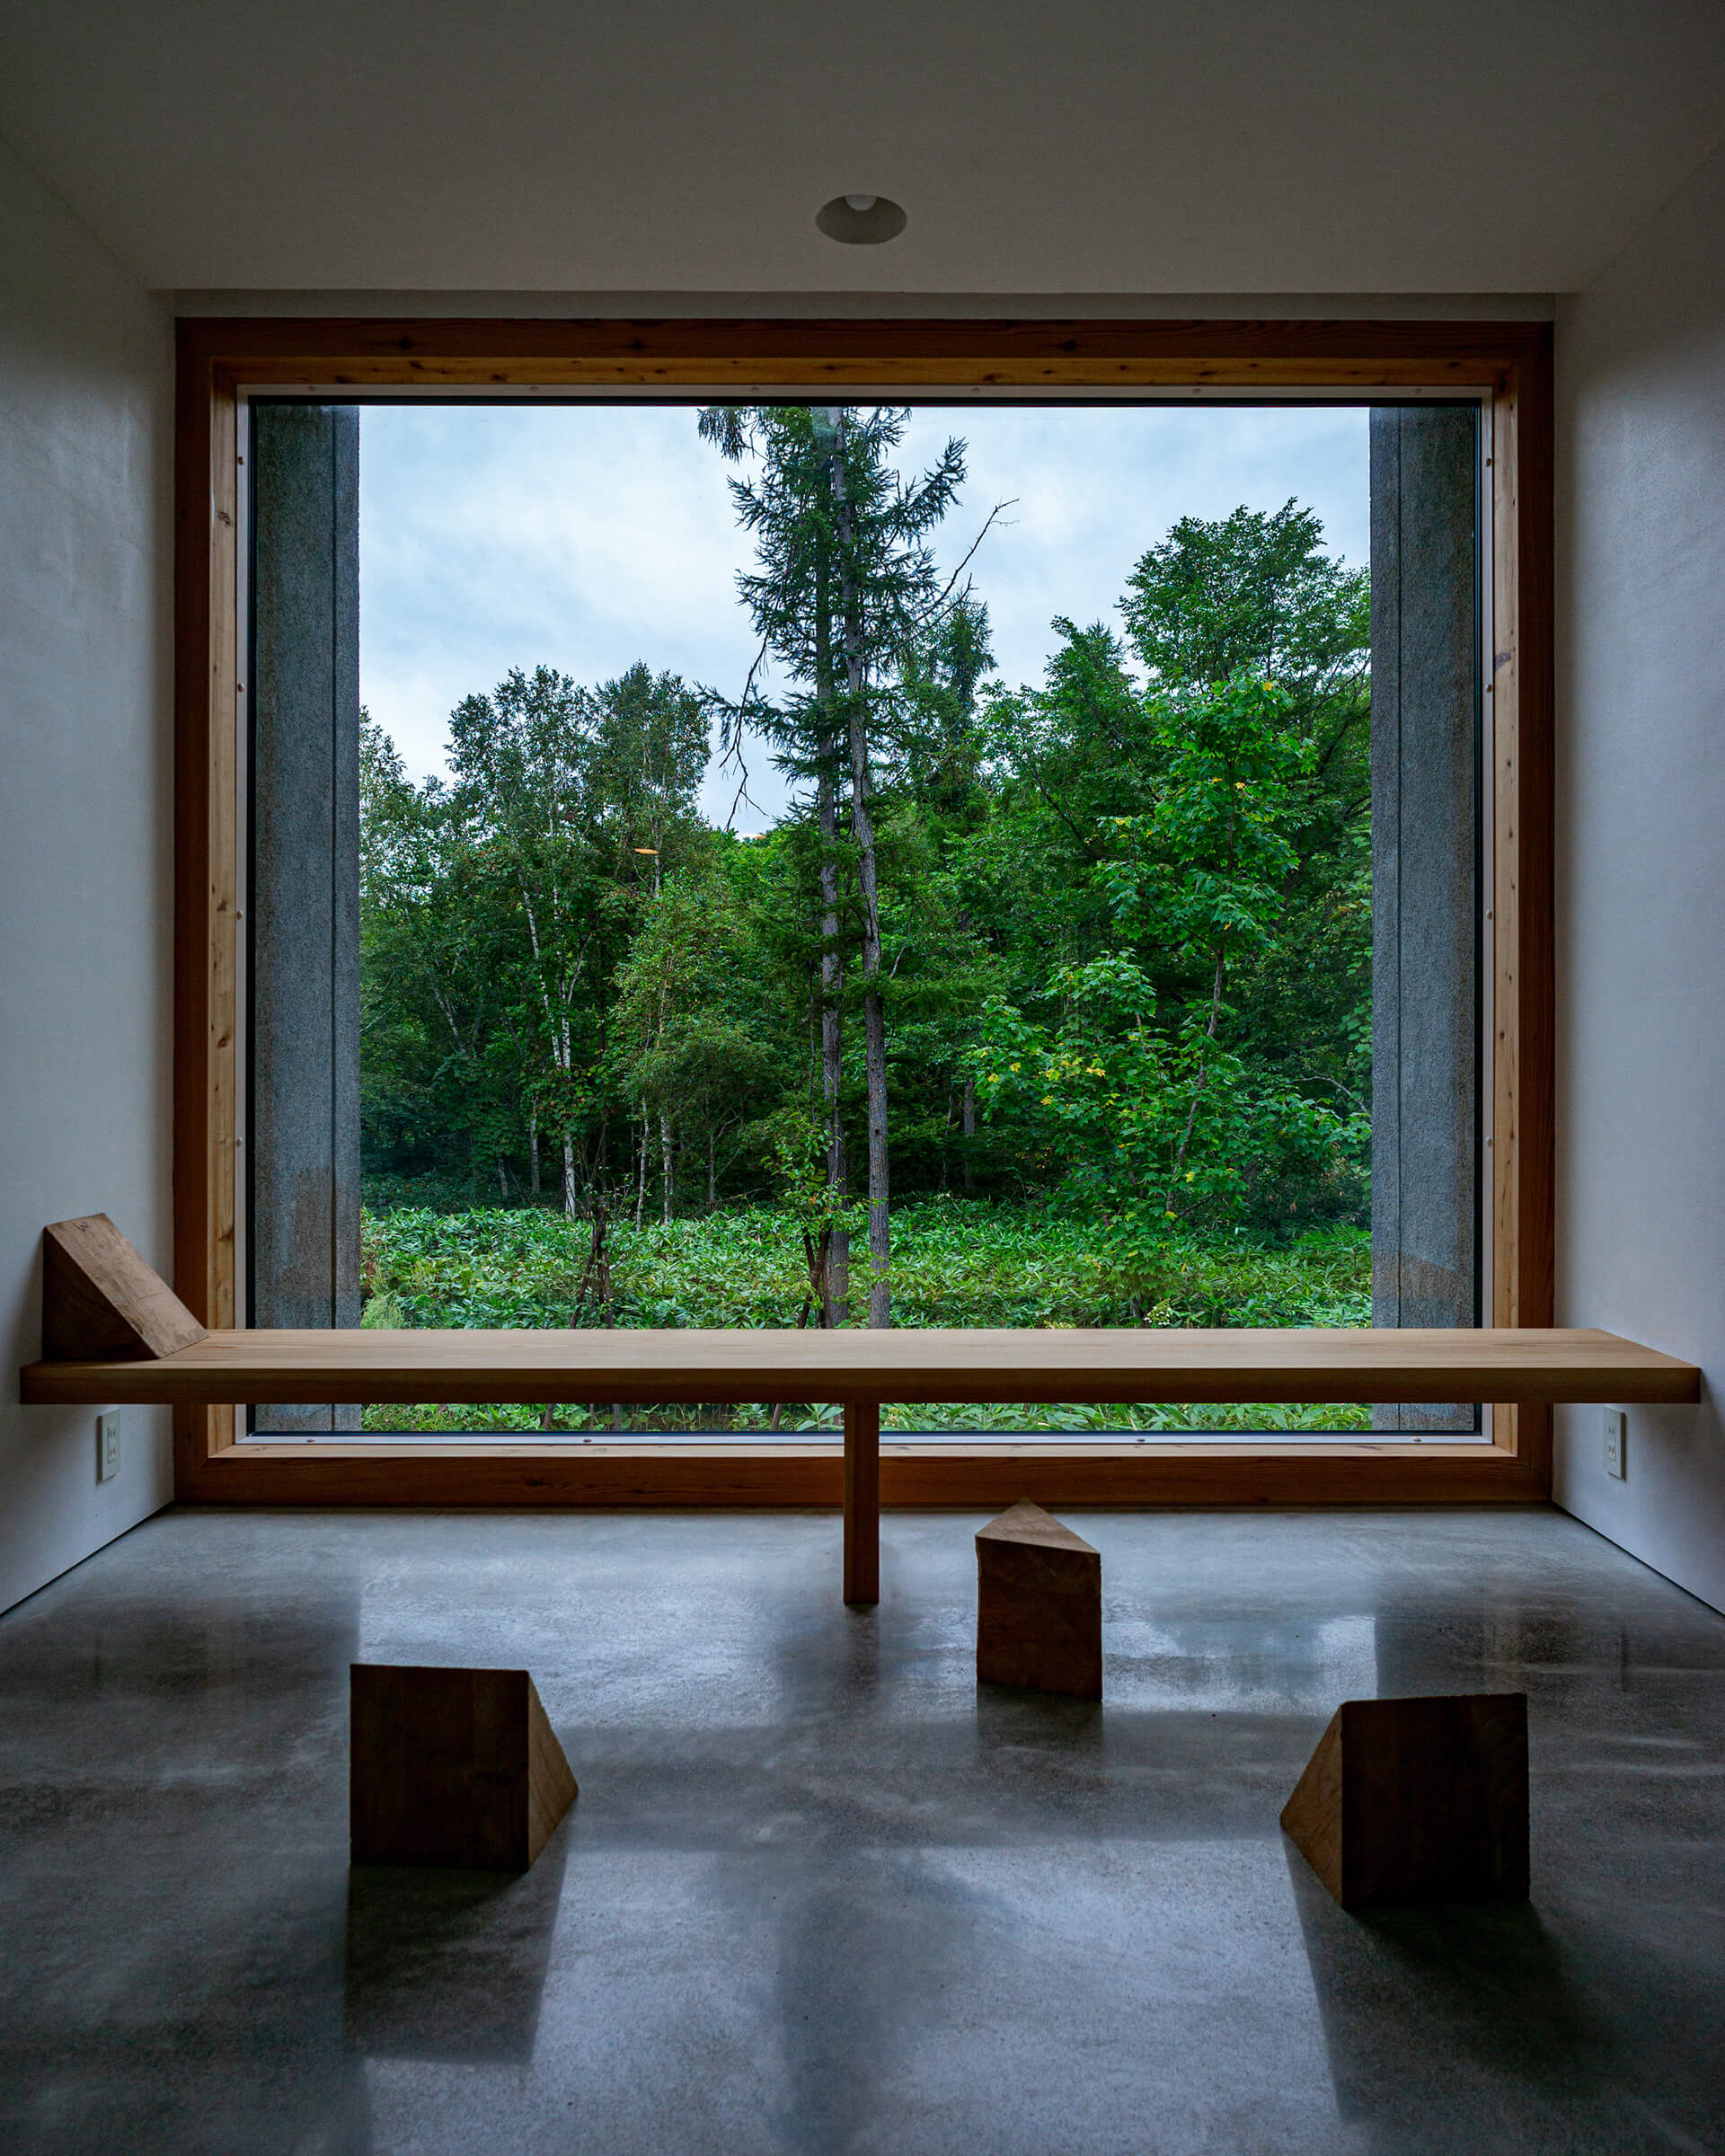 The volumes' ends feature large glass windows | House in the Forest designed by Florian Busch Architects | STIRworld